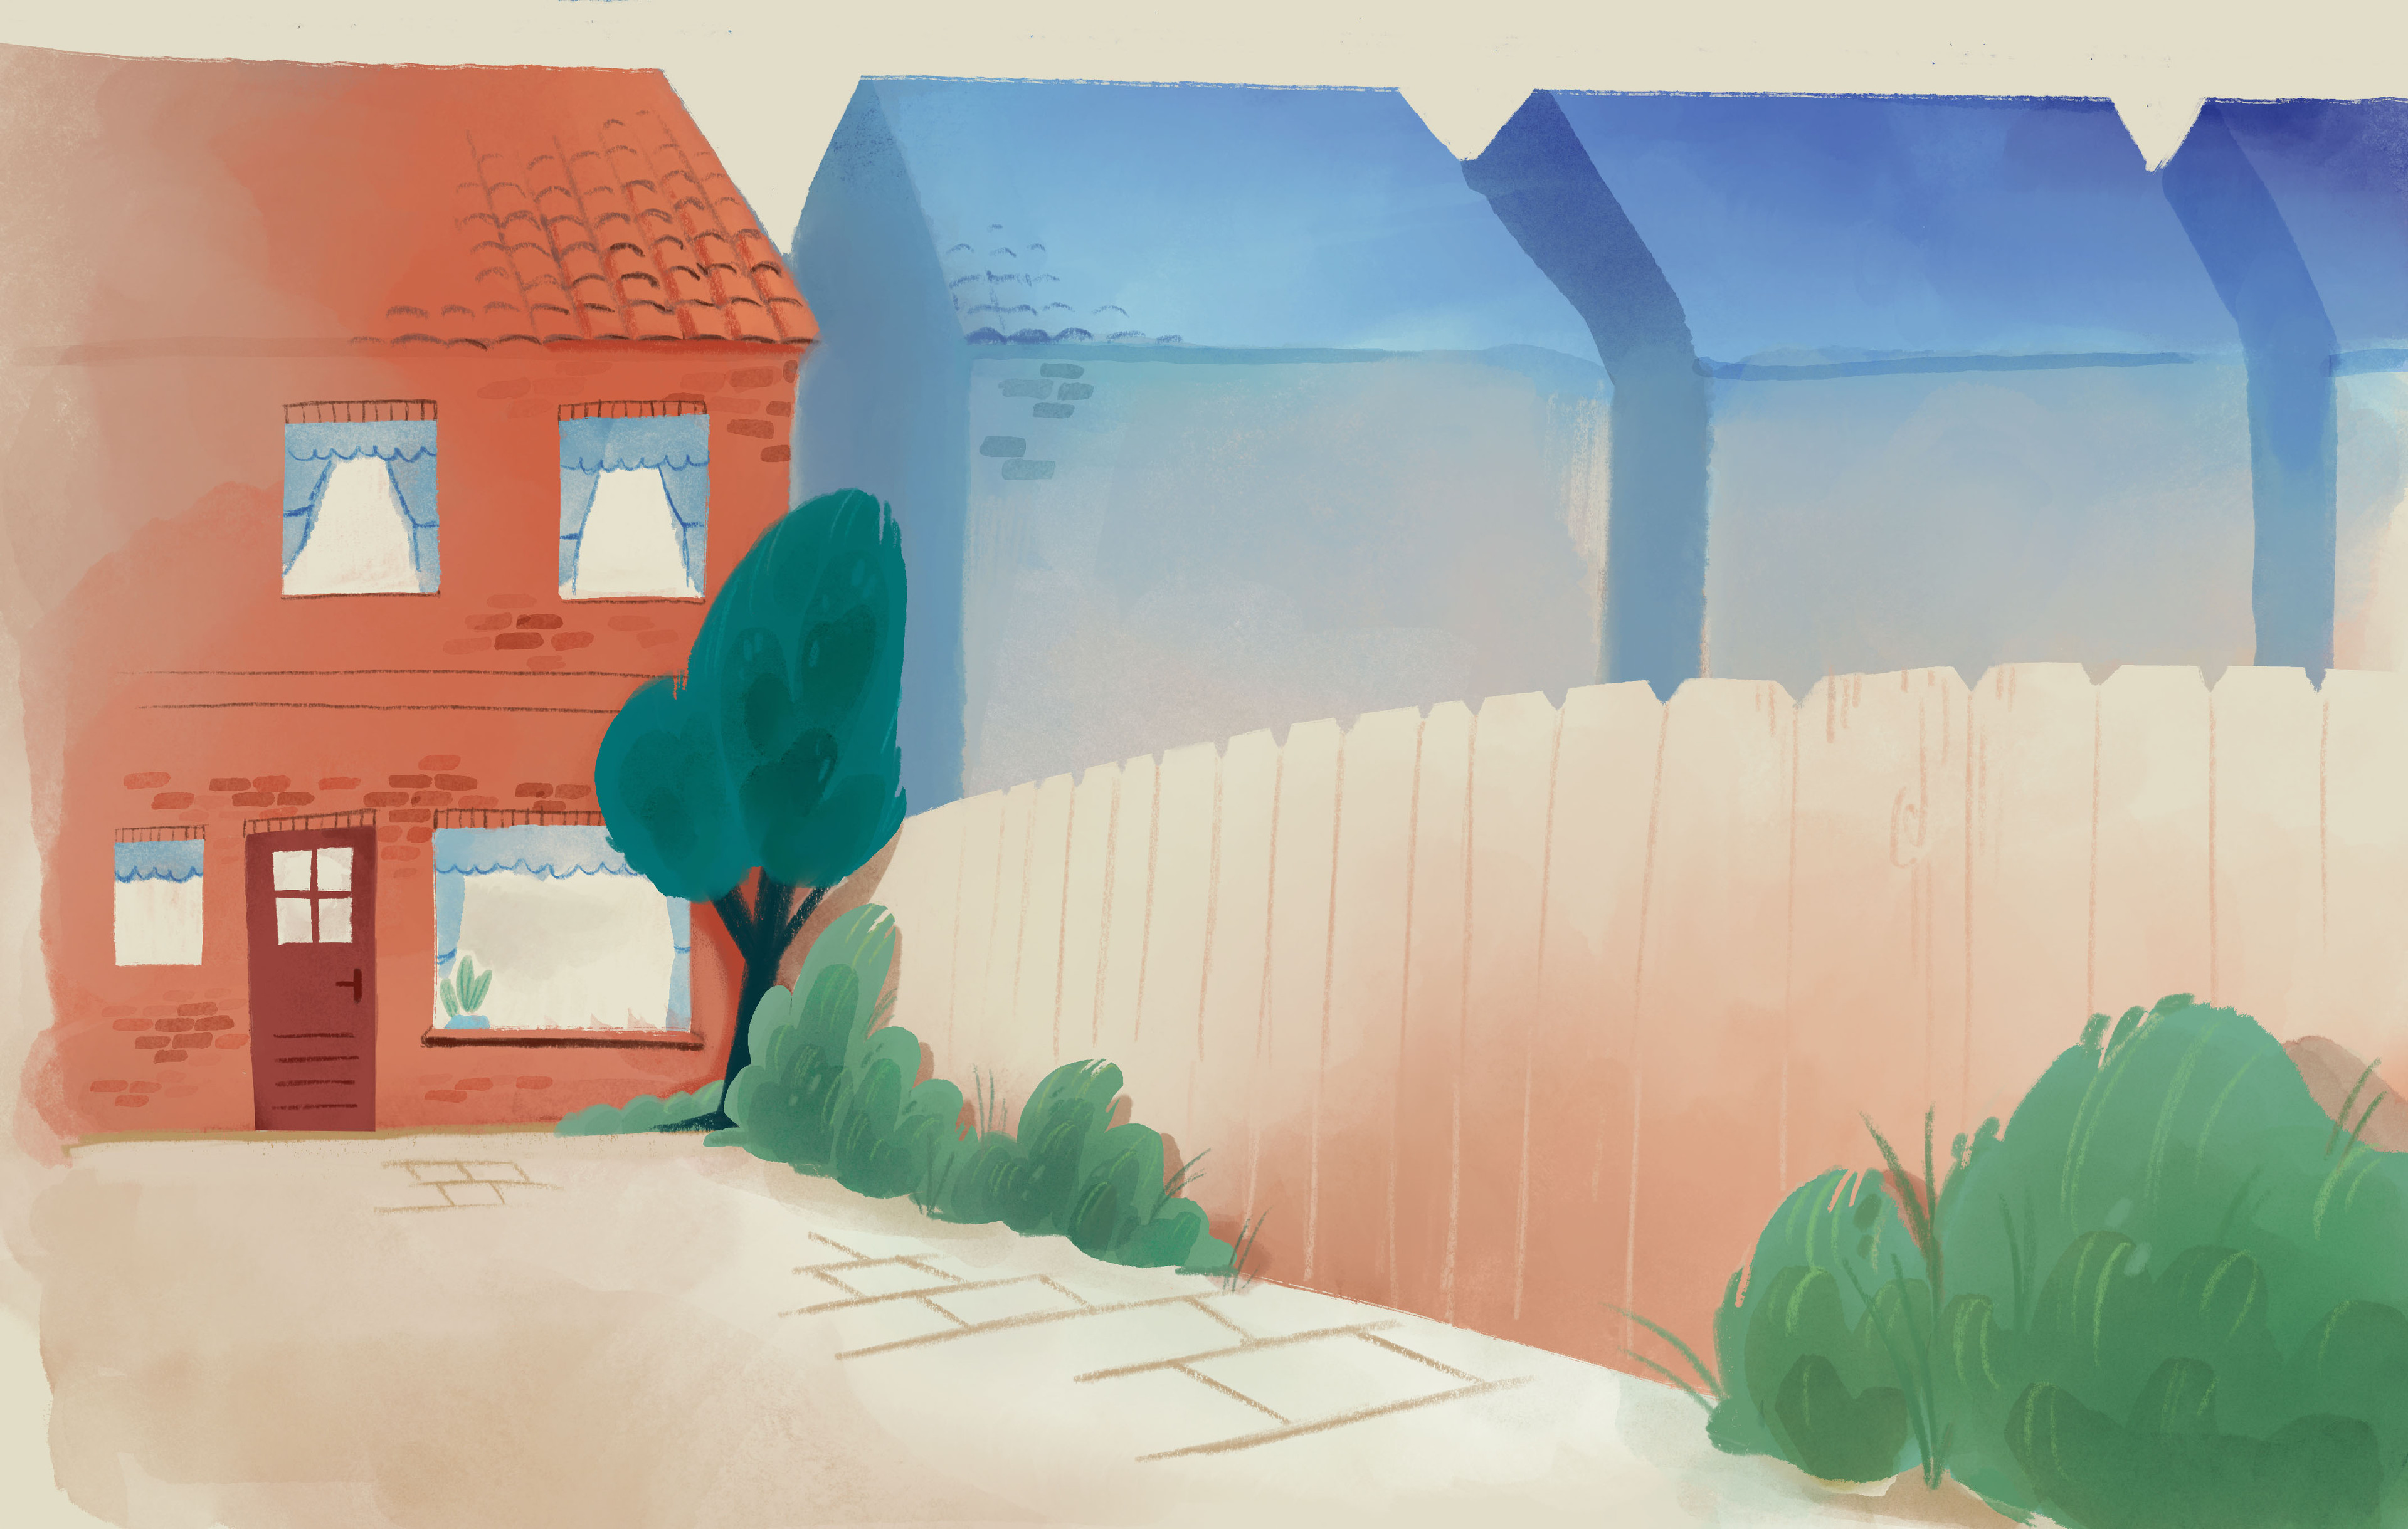 Background painting, I exported the layout from Storyboard Pro and painted it in Procreate and Photoshop